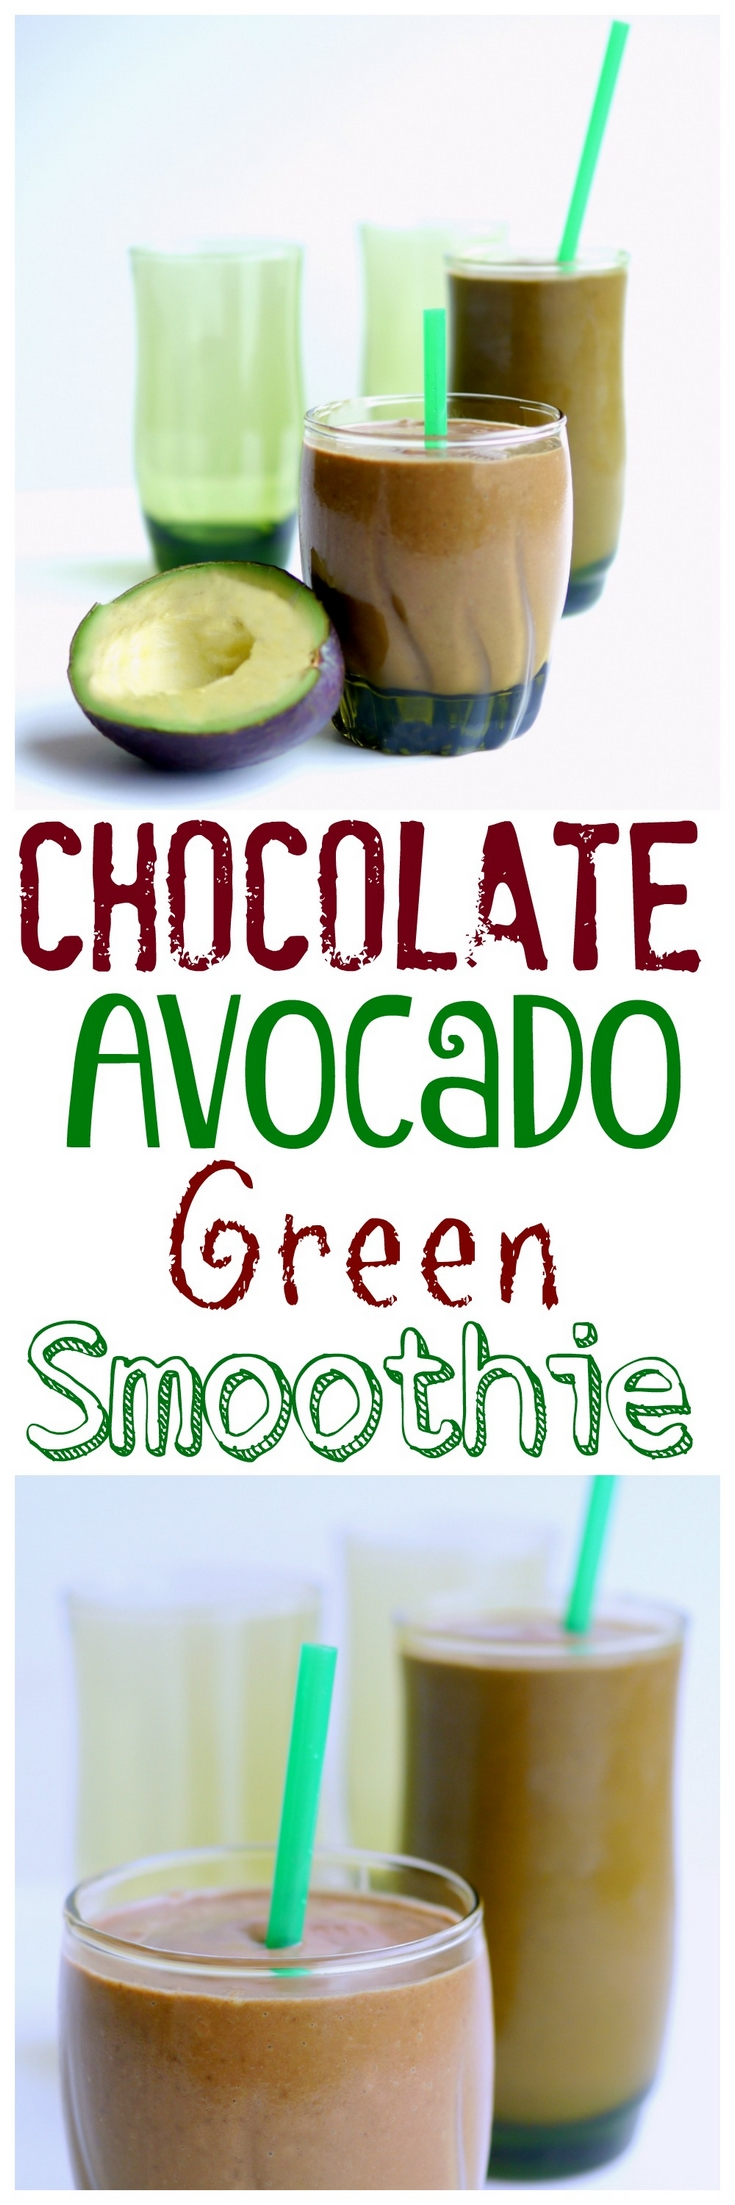 This deliciously rich and satisfying Chocolate Avocado Green Smoothie is packed with heart-healthy ingredients and makes you think you are having dessert instead of breakfast from NoblePig.com. via @cmpollak1